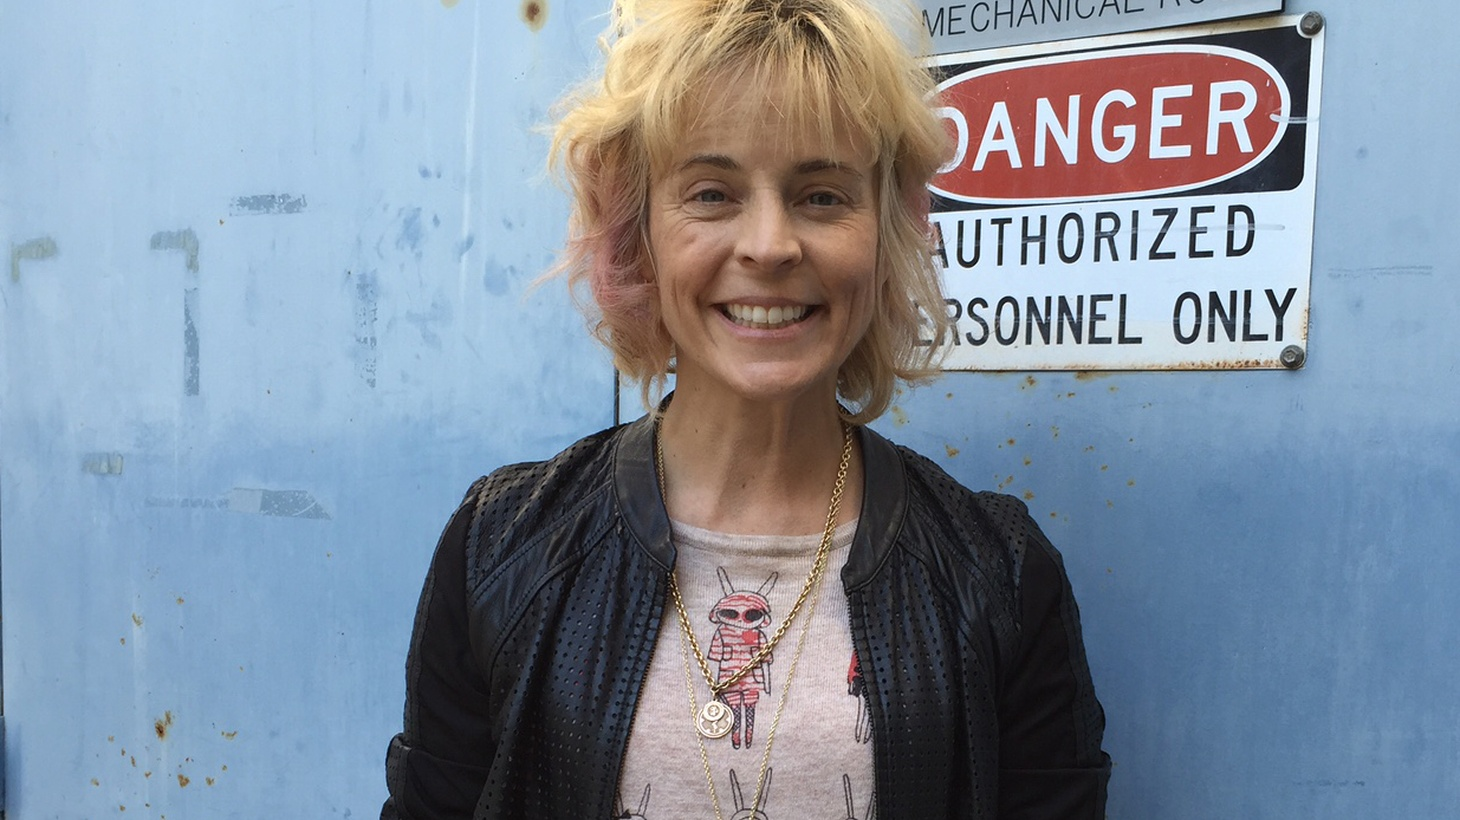 Stand-up comedian Maria Bamford is truly one of a kind. Her comedy is imaginative and unconventional, as are some of her favorite artists, including Bjork and Nina Simone.